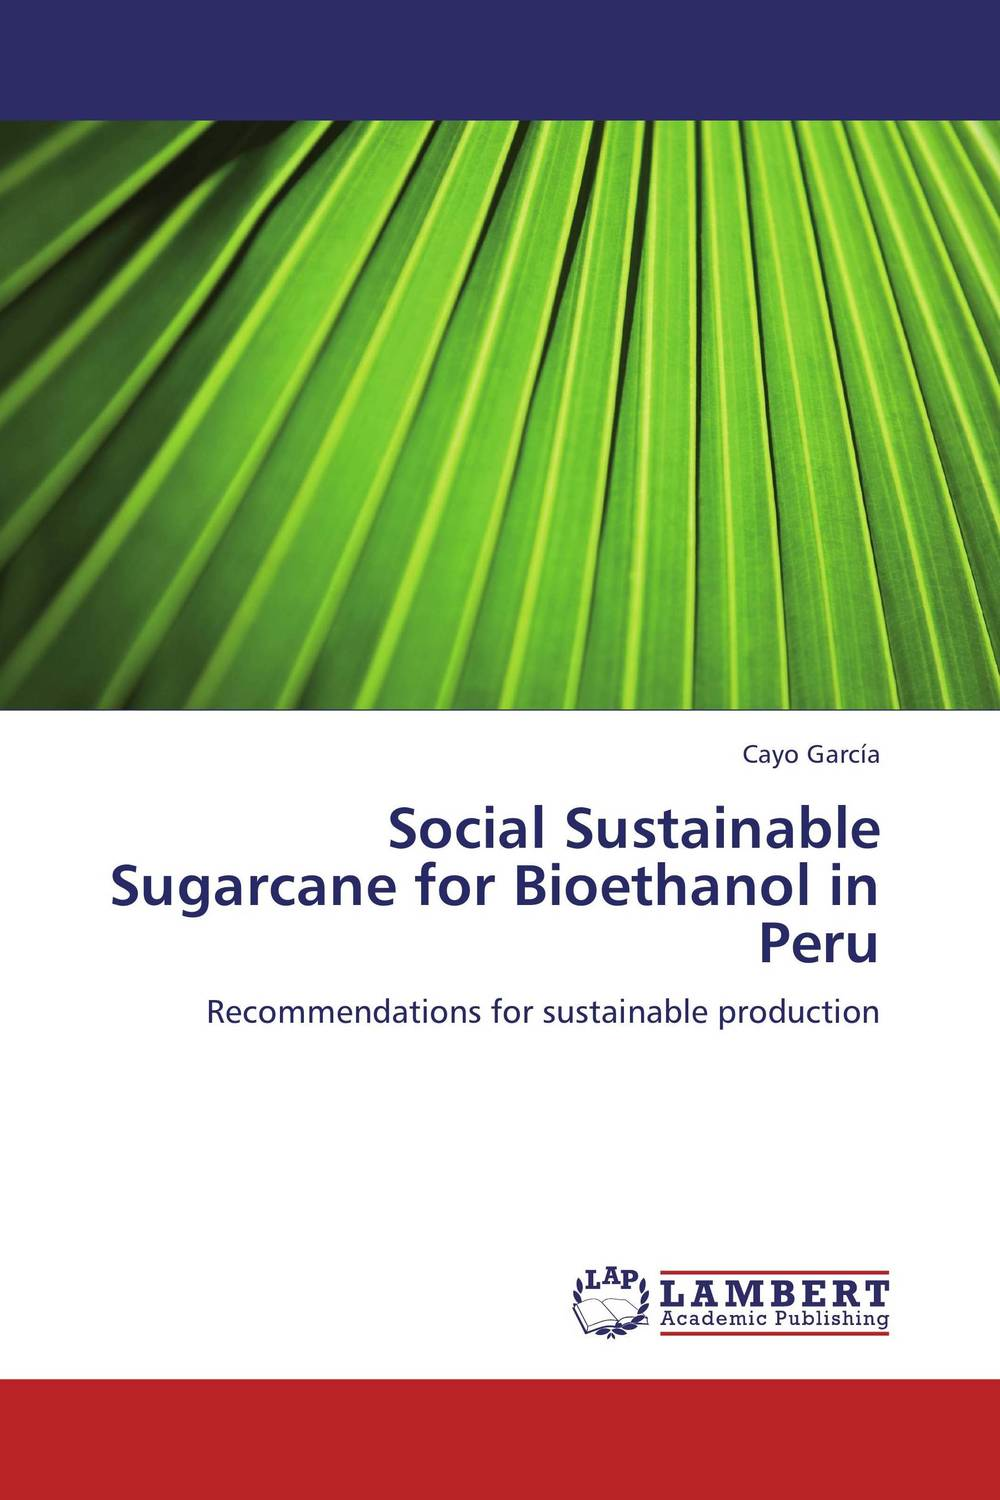 Social Sustainable Sugarcane for Bioethanol in Peru sadat khattab usama abdul raouf and tsutomu kodaki bio ethanol for future from woody biomass